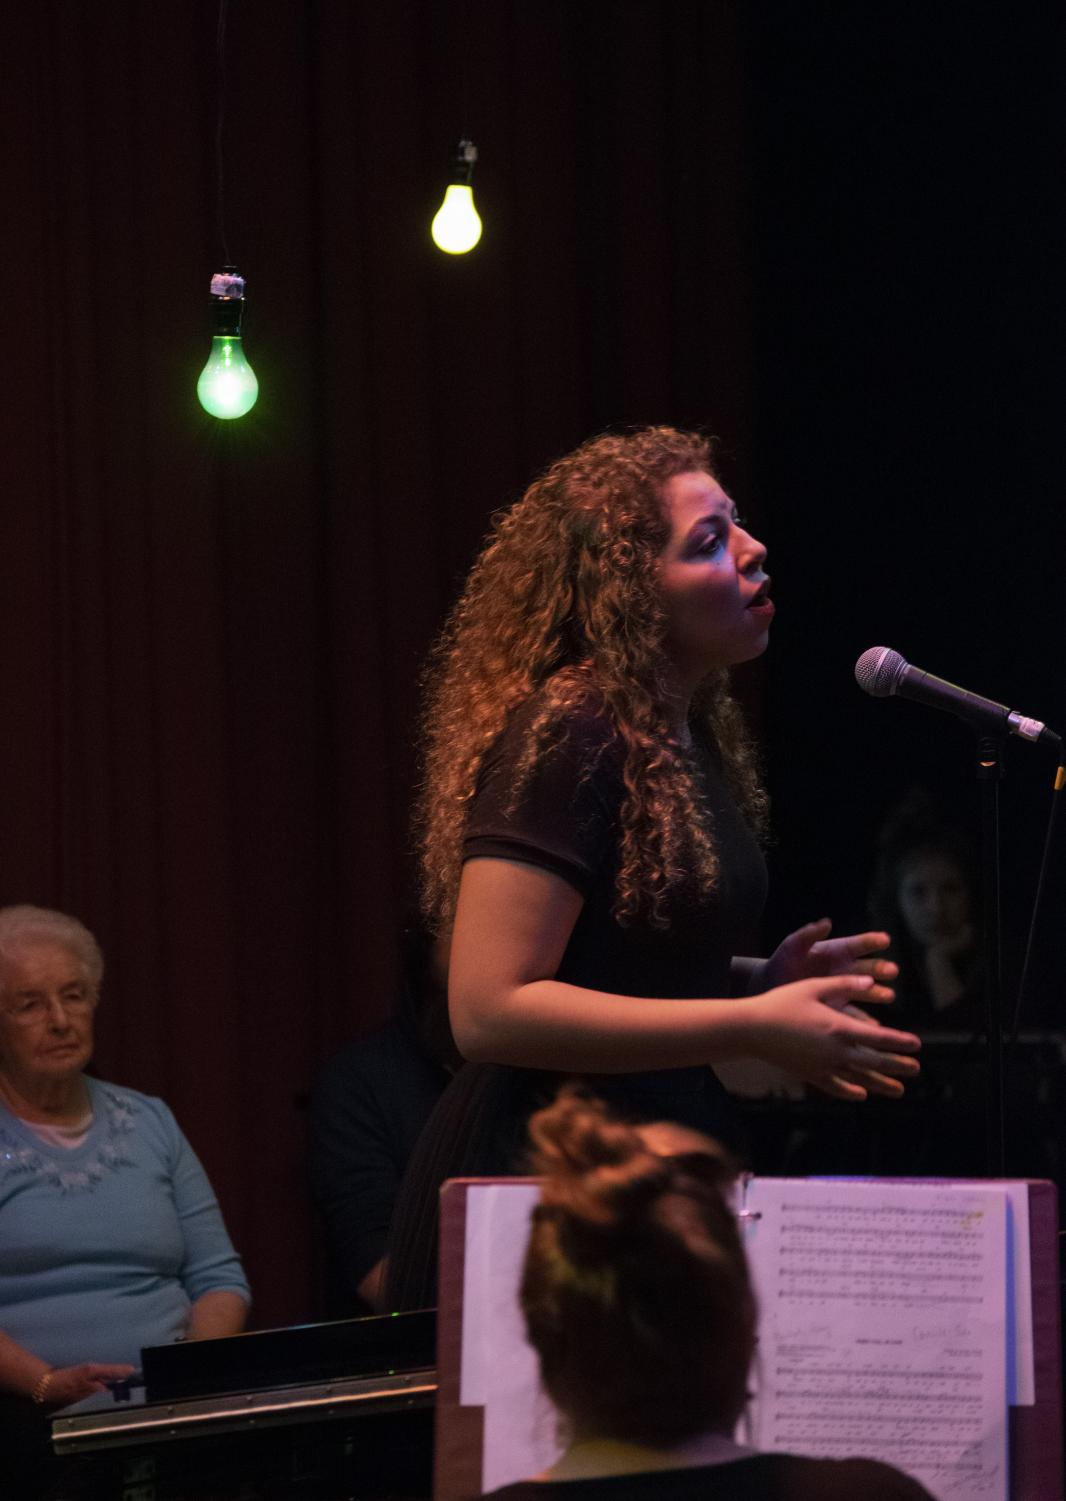 Senior Camille Khelseau performs the first jazz solo of the night at the Premium Blend cabaret concert on Thursday, Feb. 21.